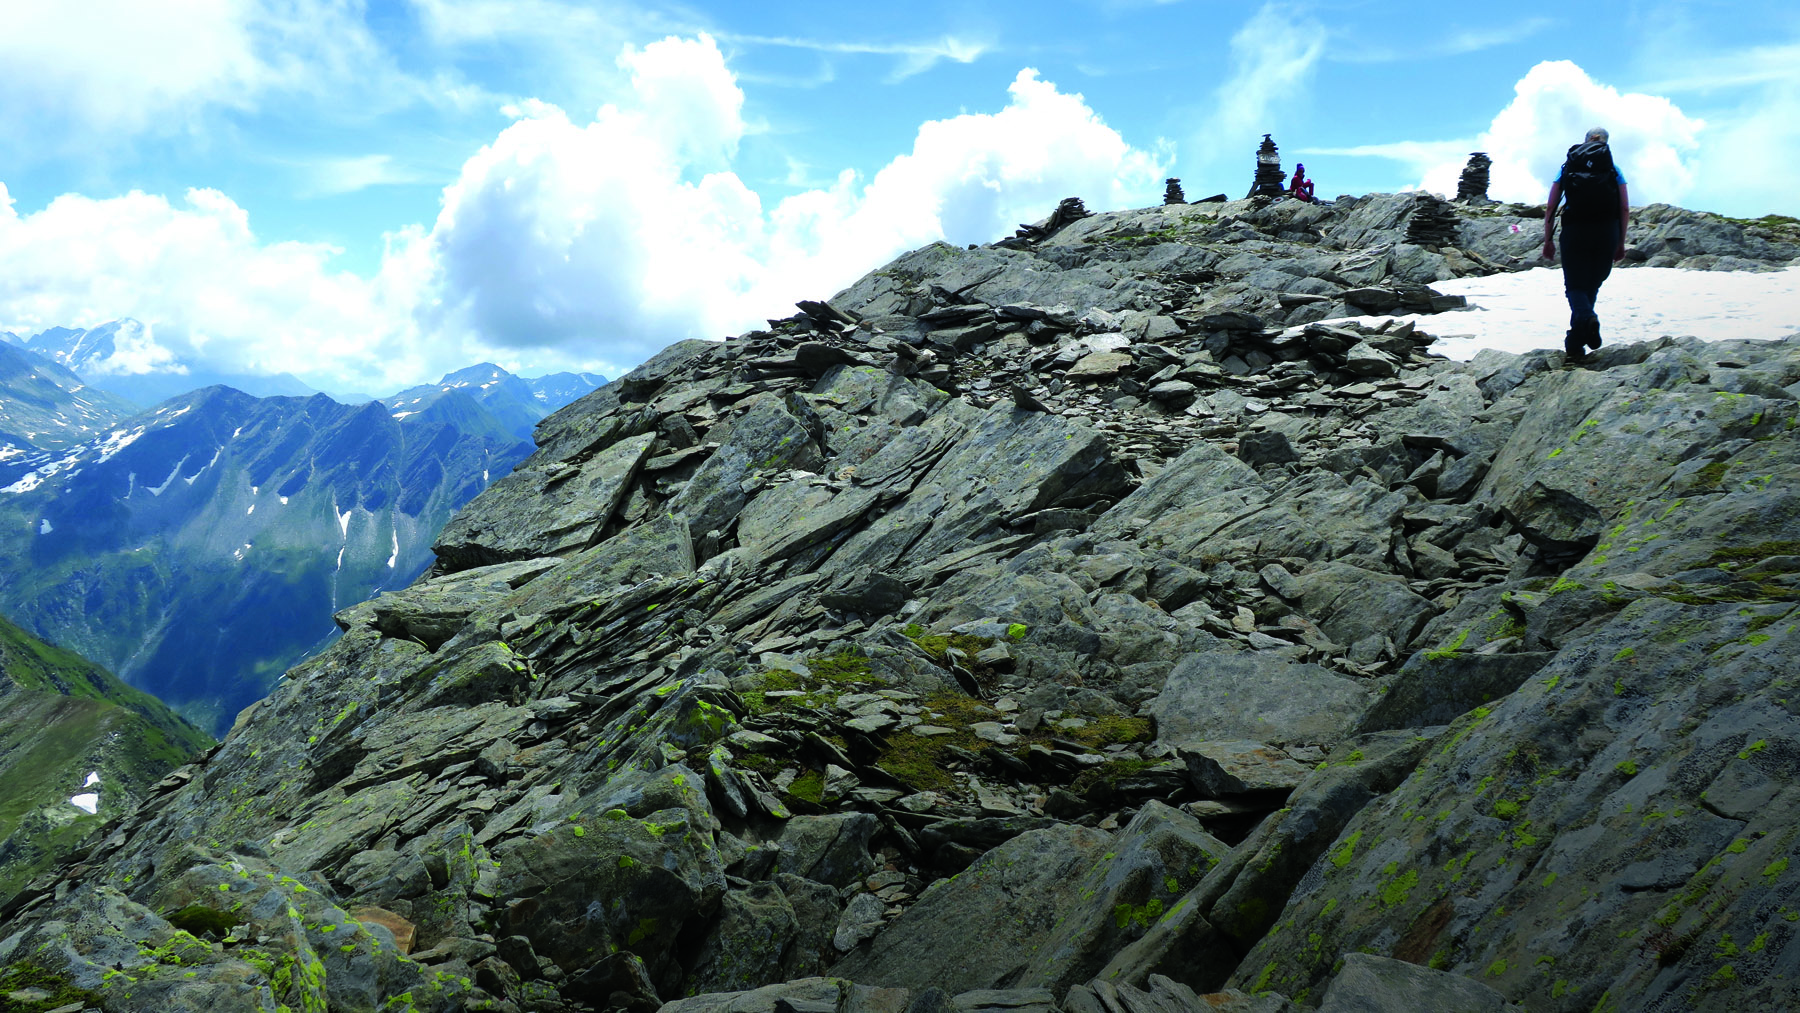 Summitting Giübin for a picnic lunch on our way to the Gotthard Pass